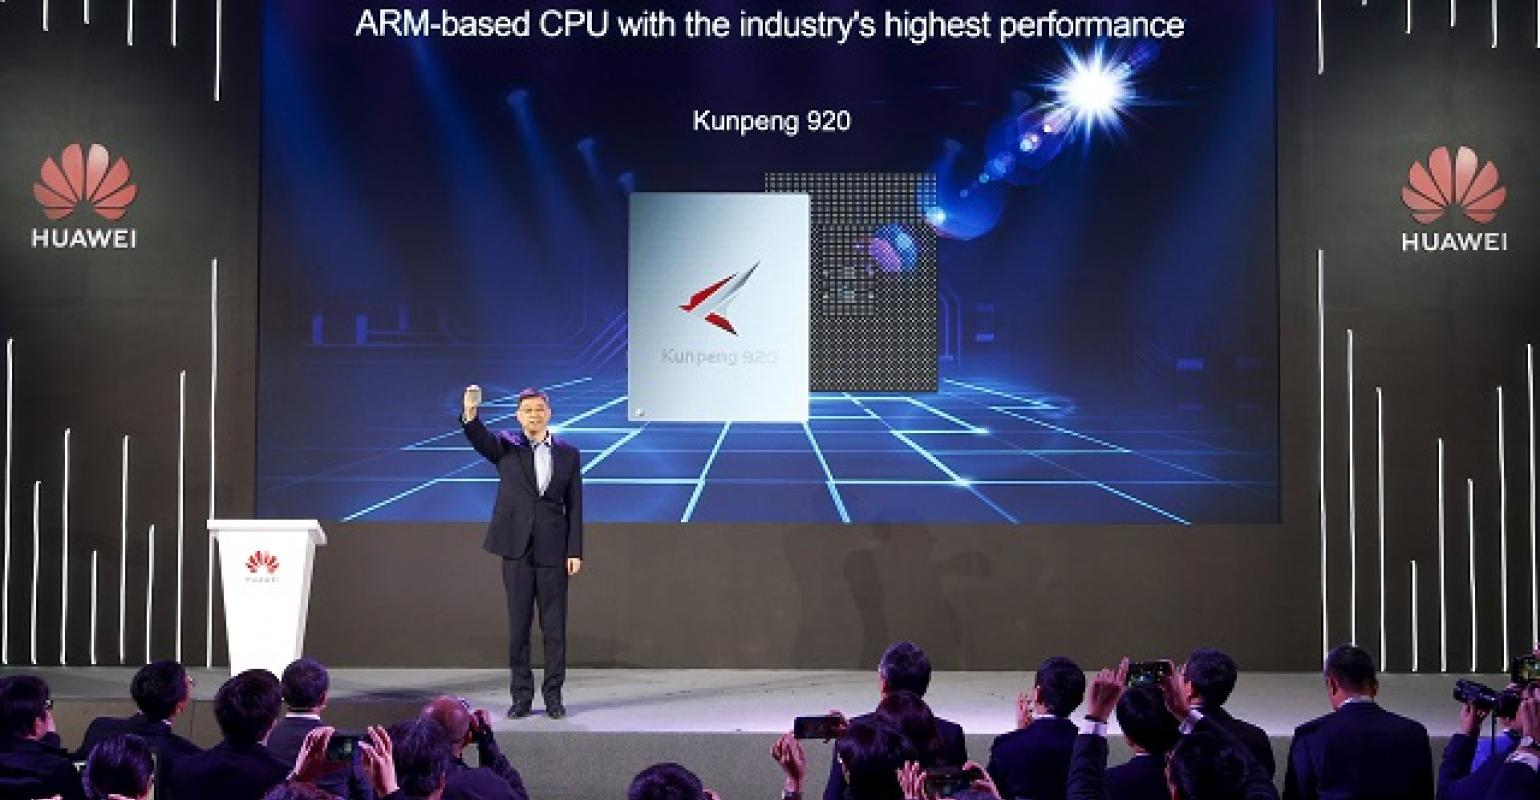 Huawei Unveils New Chipset Using Arm Design for Server Push